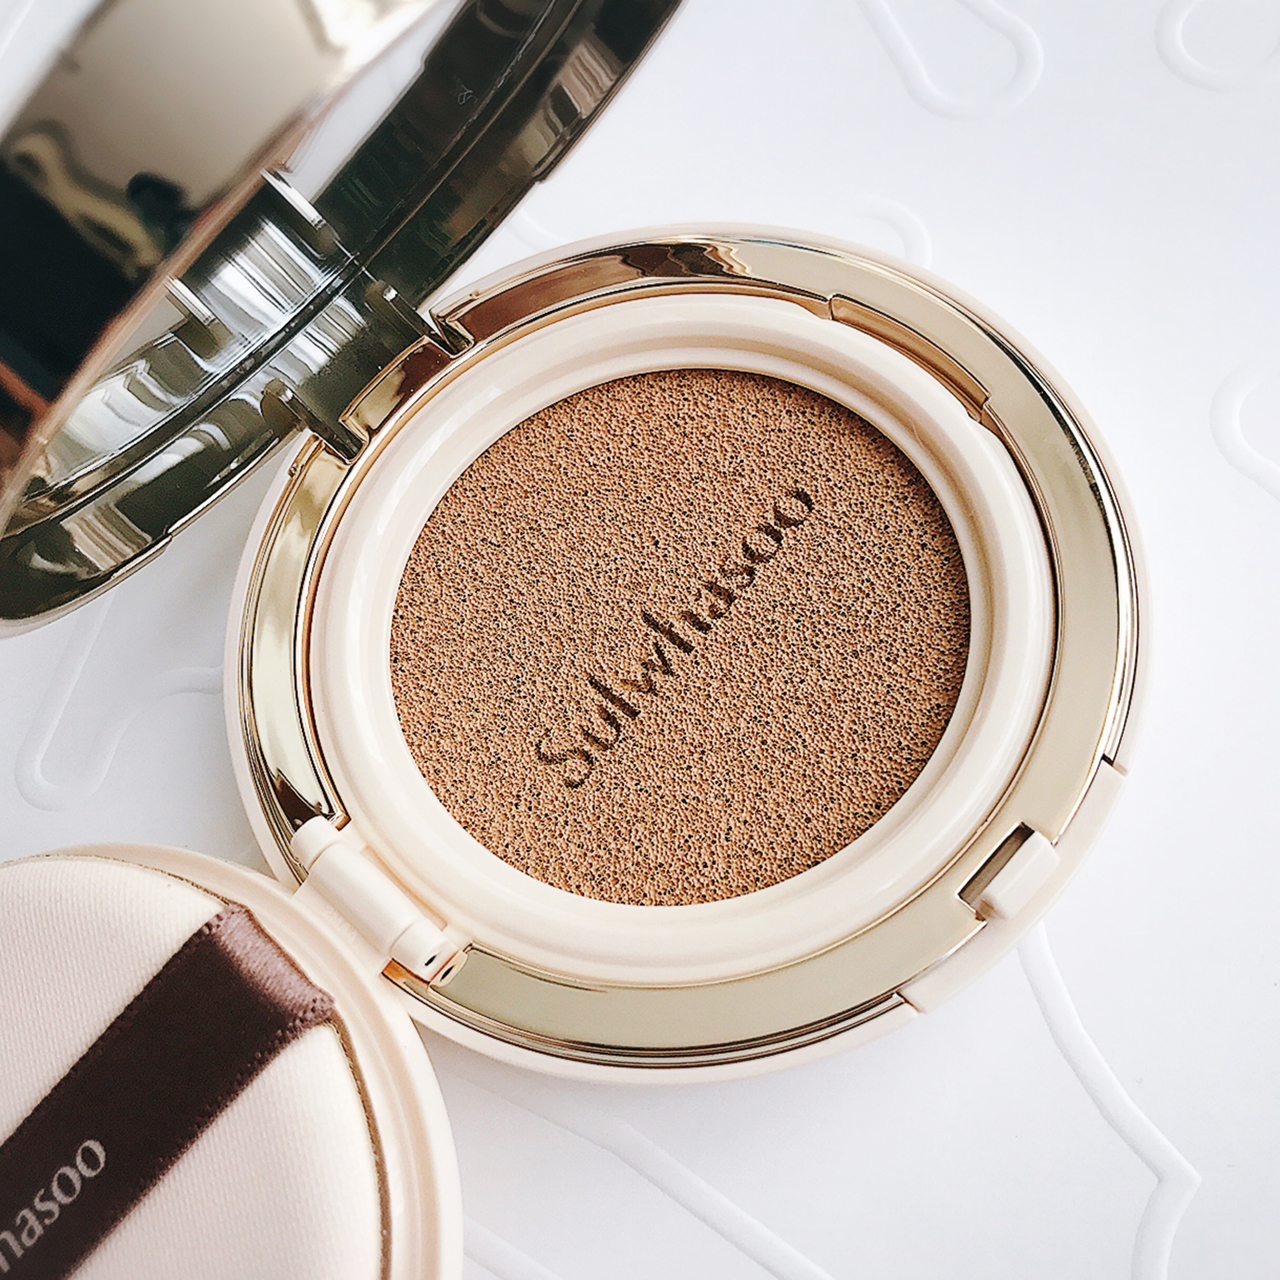 Sulwhasoo Perfecting Cushion EX interiors